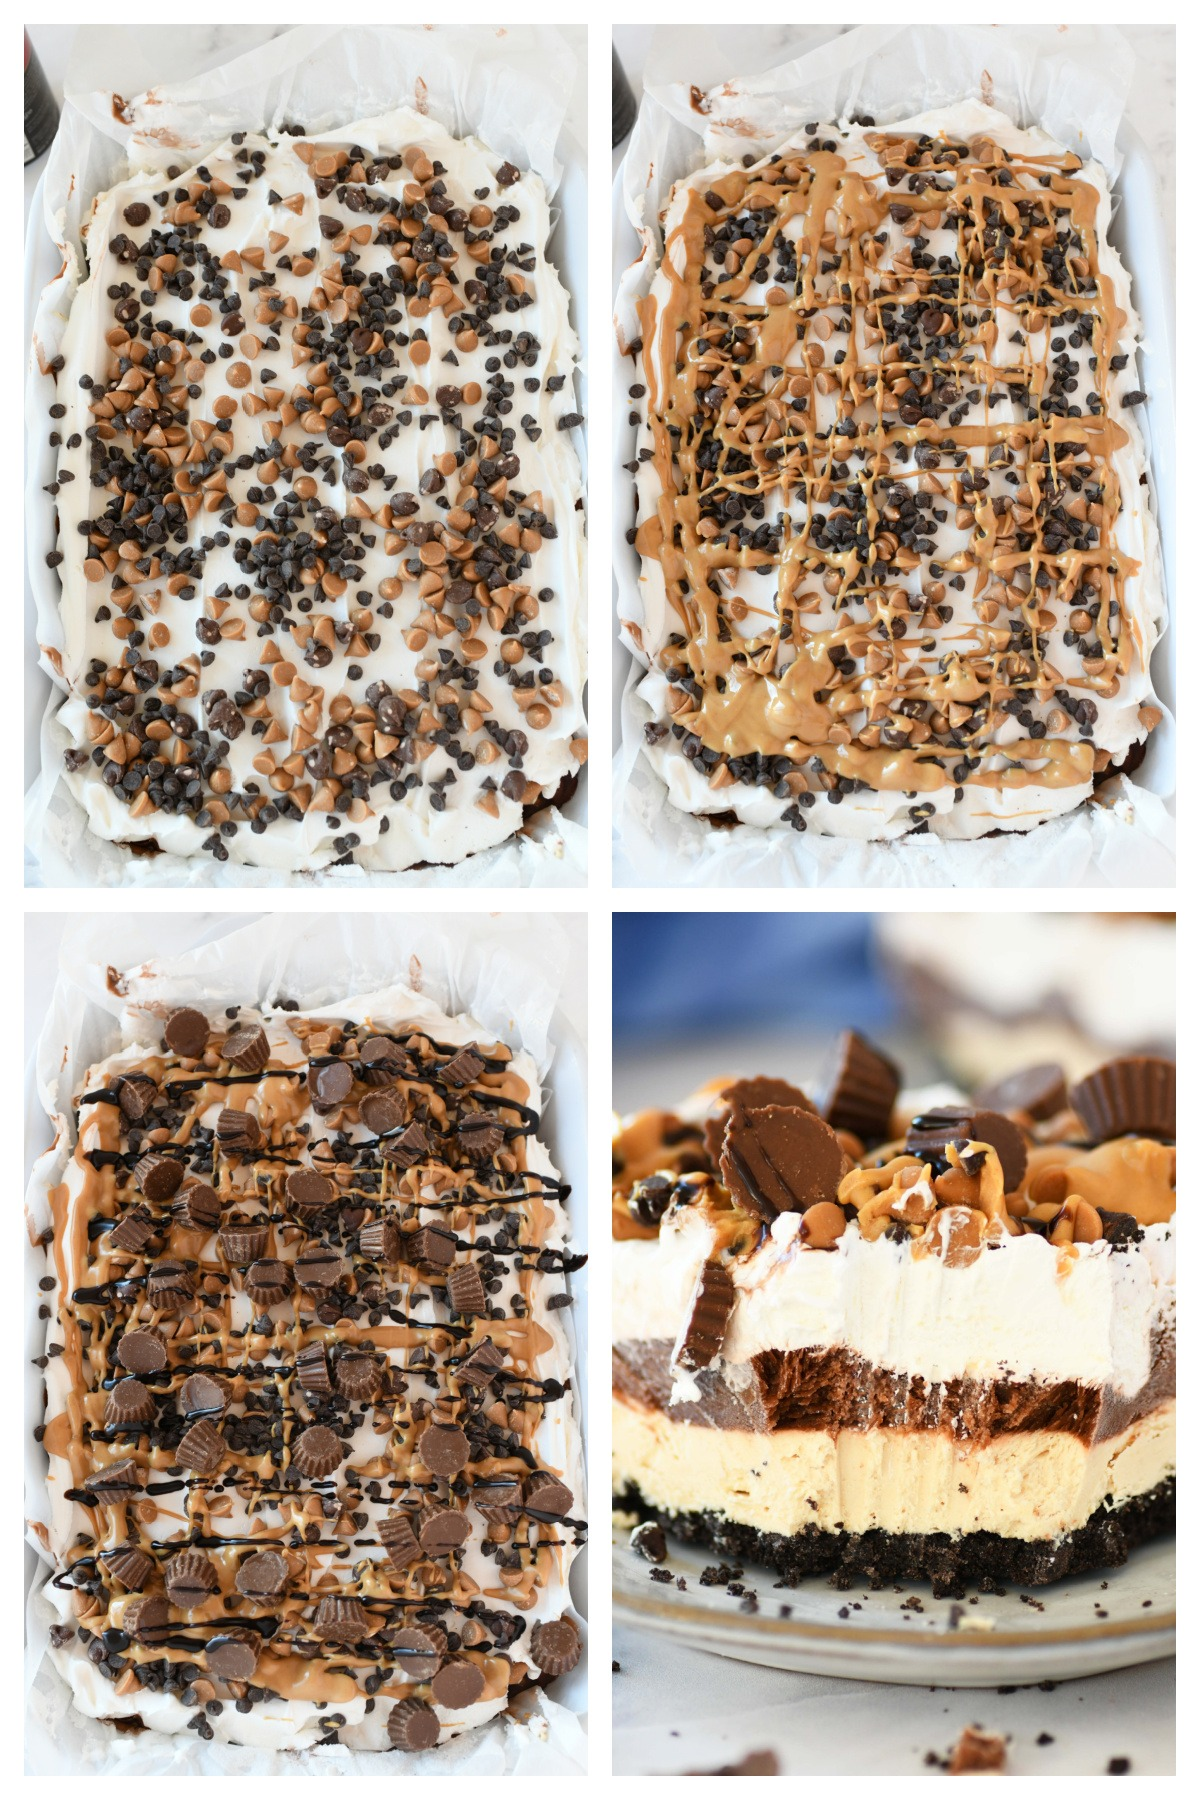 How to Make Peanut Butter Chocolate Lasagna Dessert. A 4 block image collage of the steps of topping this no-bake dessert.